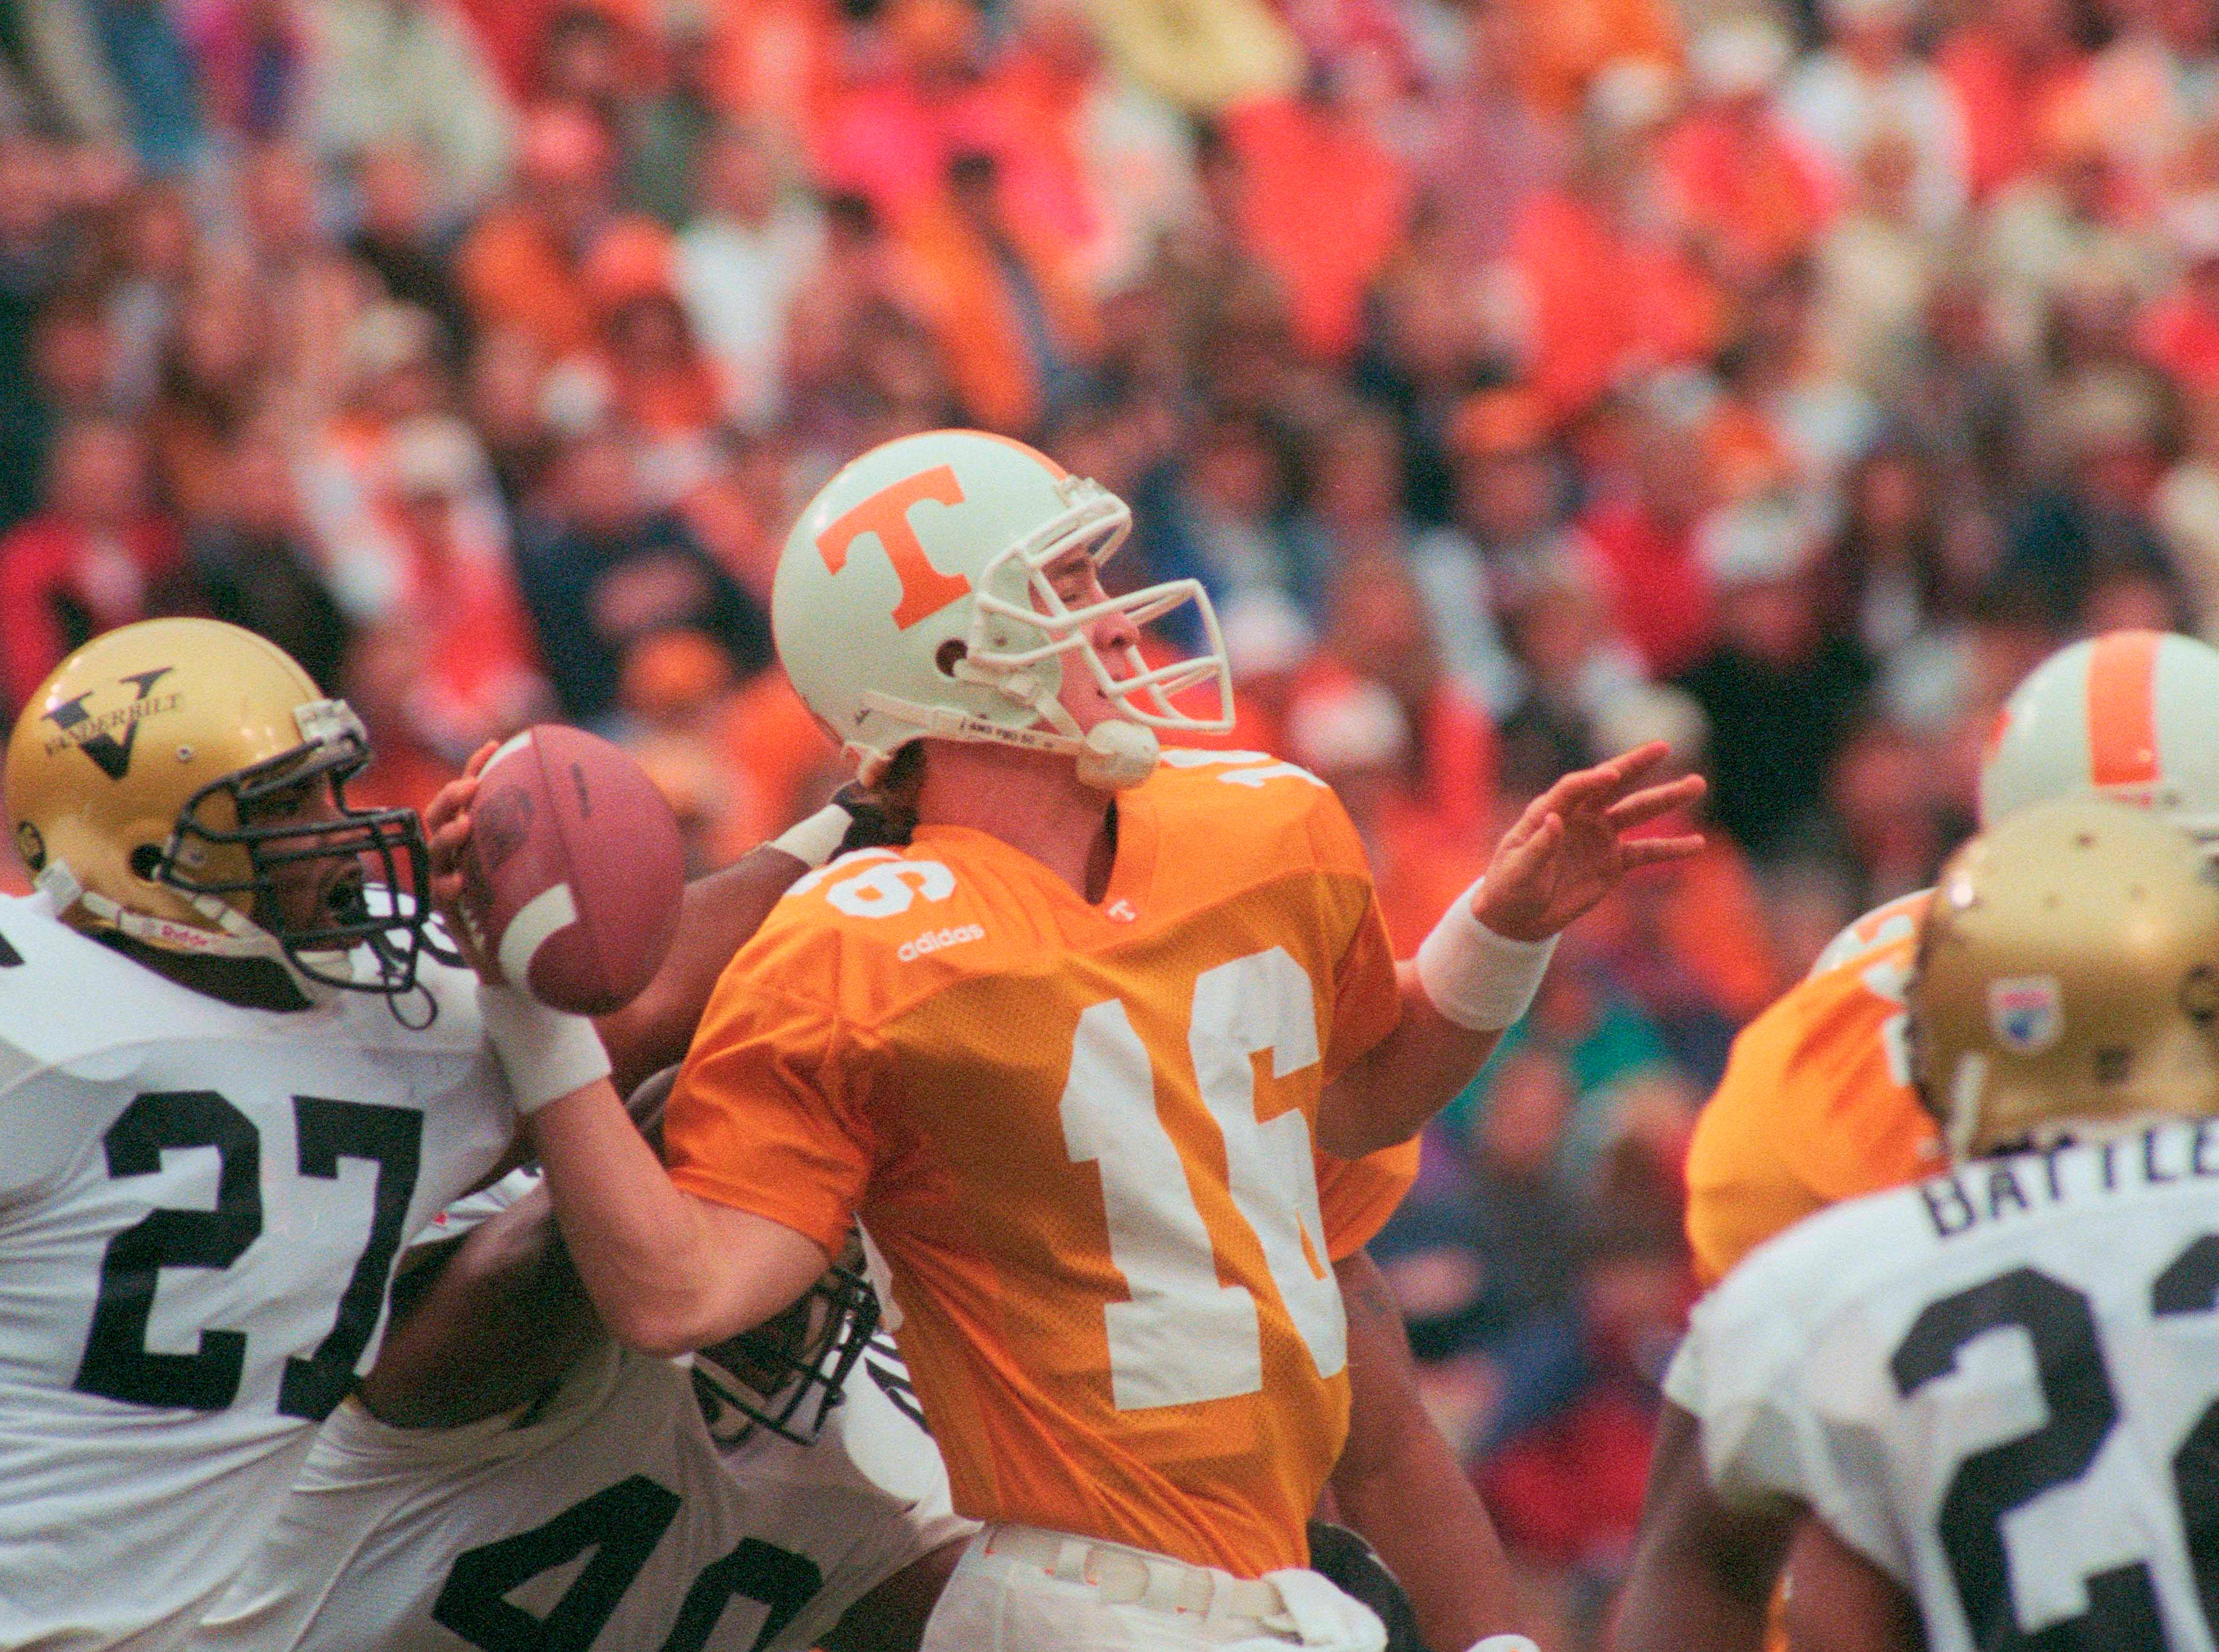 Tennessee quarterback Peyton Manning is pressured by Vanderbilt defenders on Nov. 29 1997, at Neyland Stadium. Manning went 12-27 passing with one interception and one touchdown as the Vols eked out a 17-10 victory.